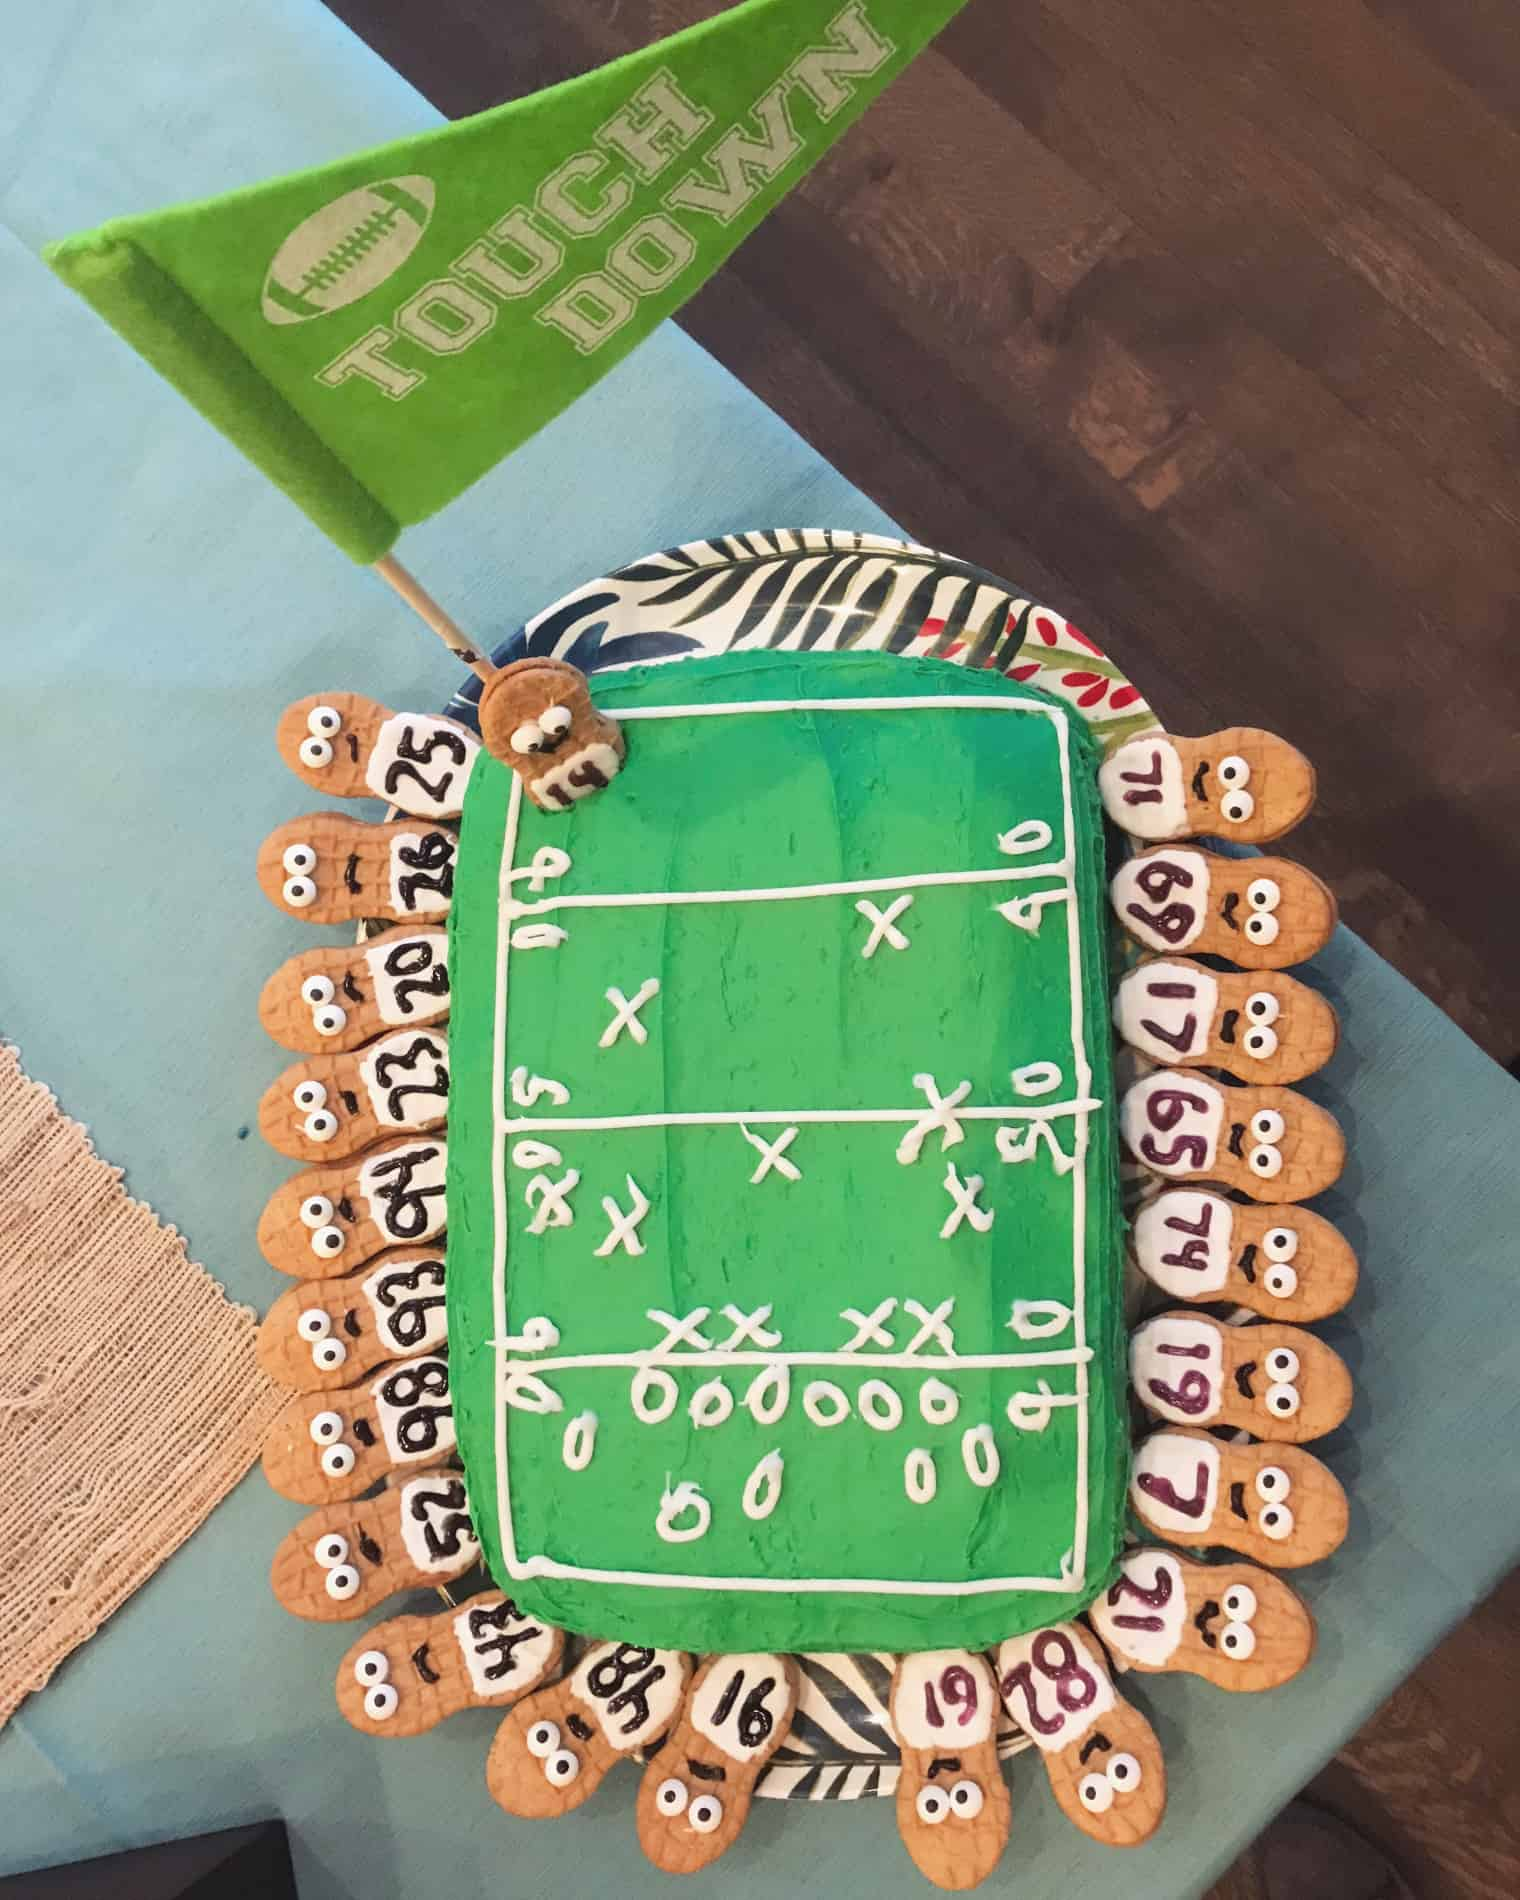 Touchdown cake with cookie players